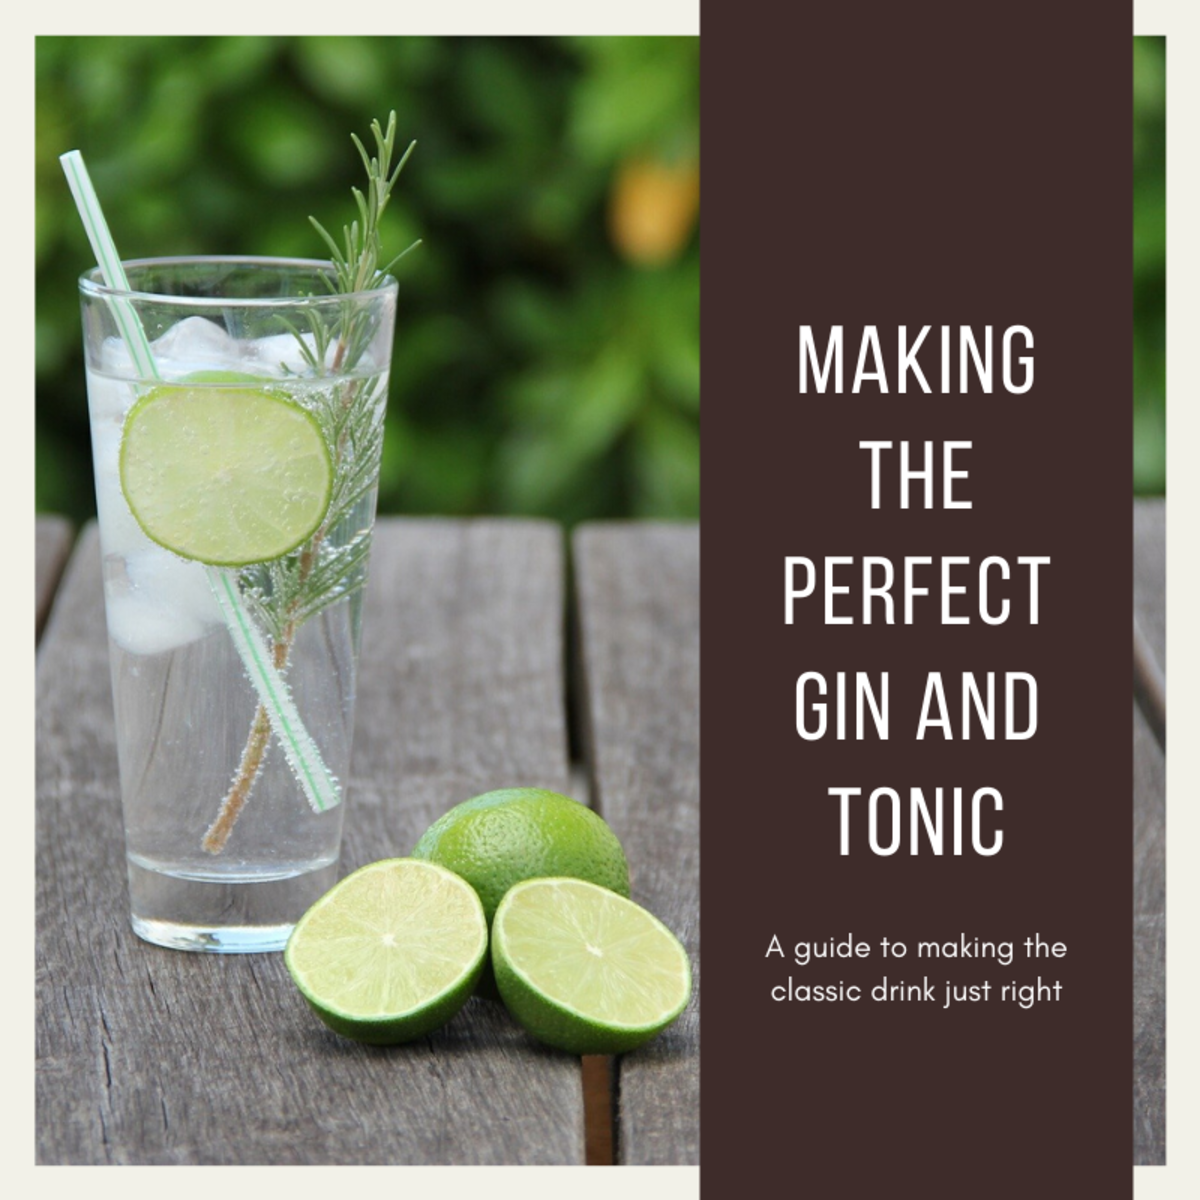 This guide will provide you with the secrets to making the perfect gin and tonic every time.